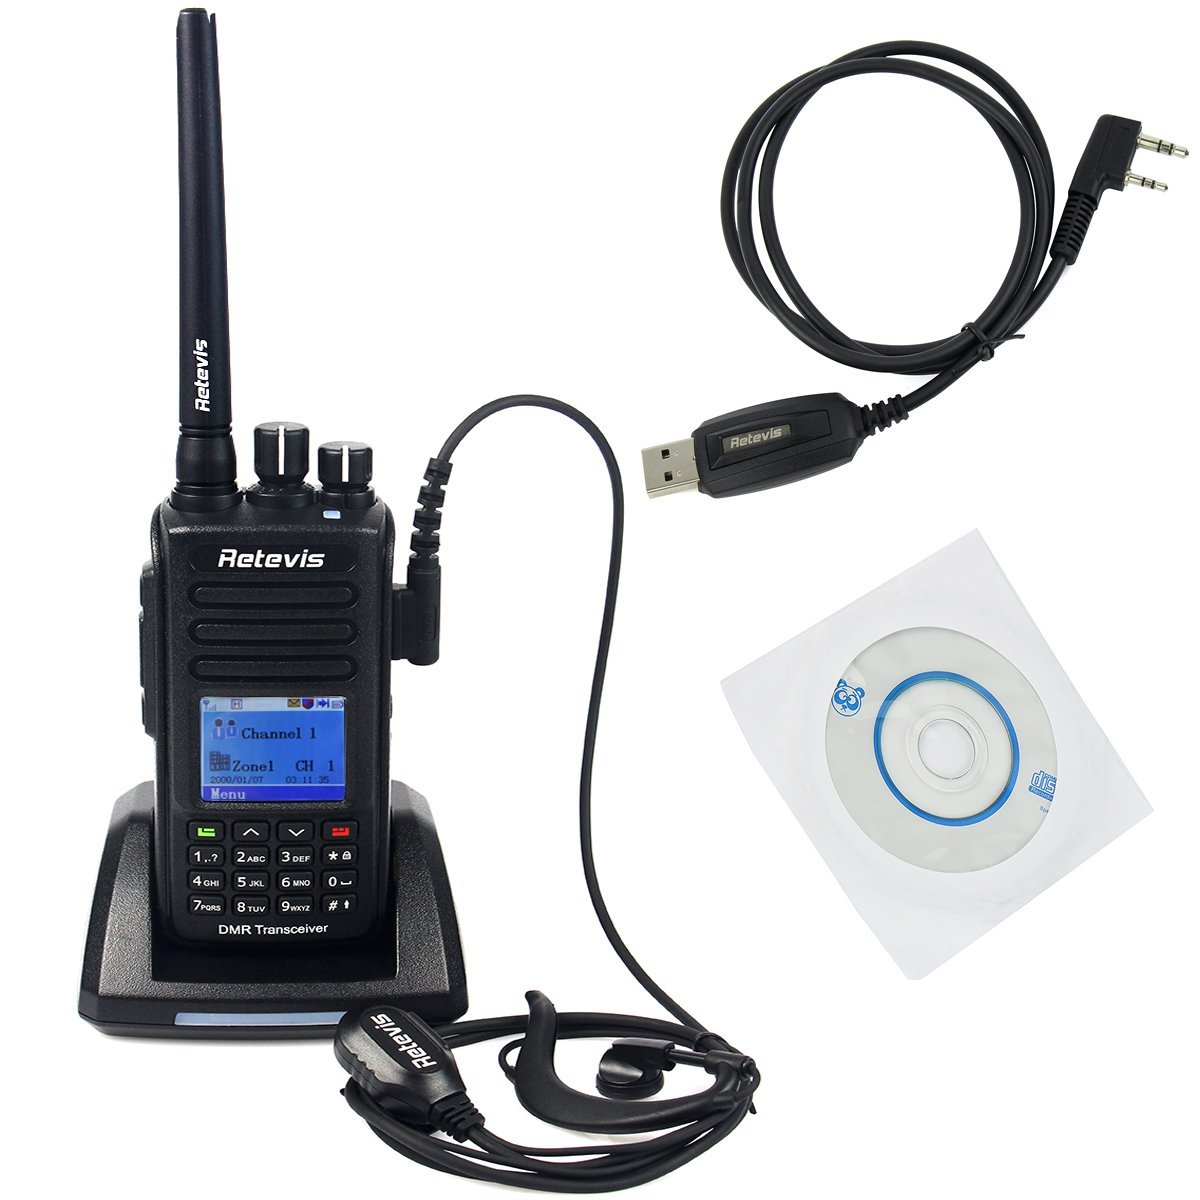 Retevis RT8 DMR Digital Two Way Radio IP67 Waterproof Ham Radio 5W VHF 136-174Mhz 1000 Channel and Programming Cable(1 pack)